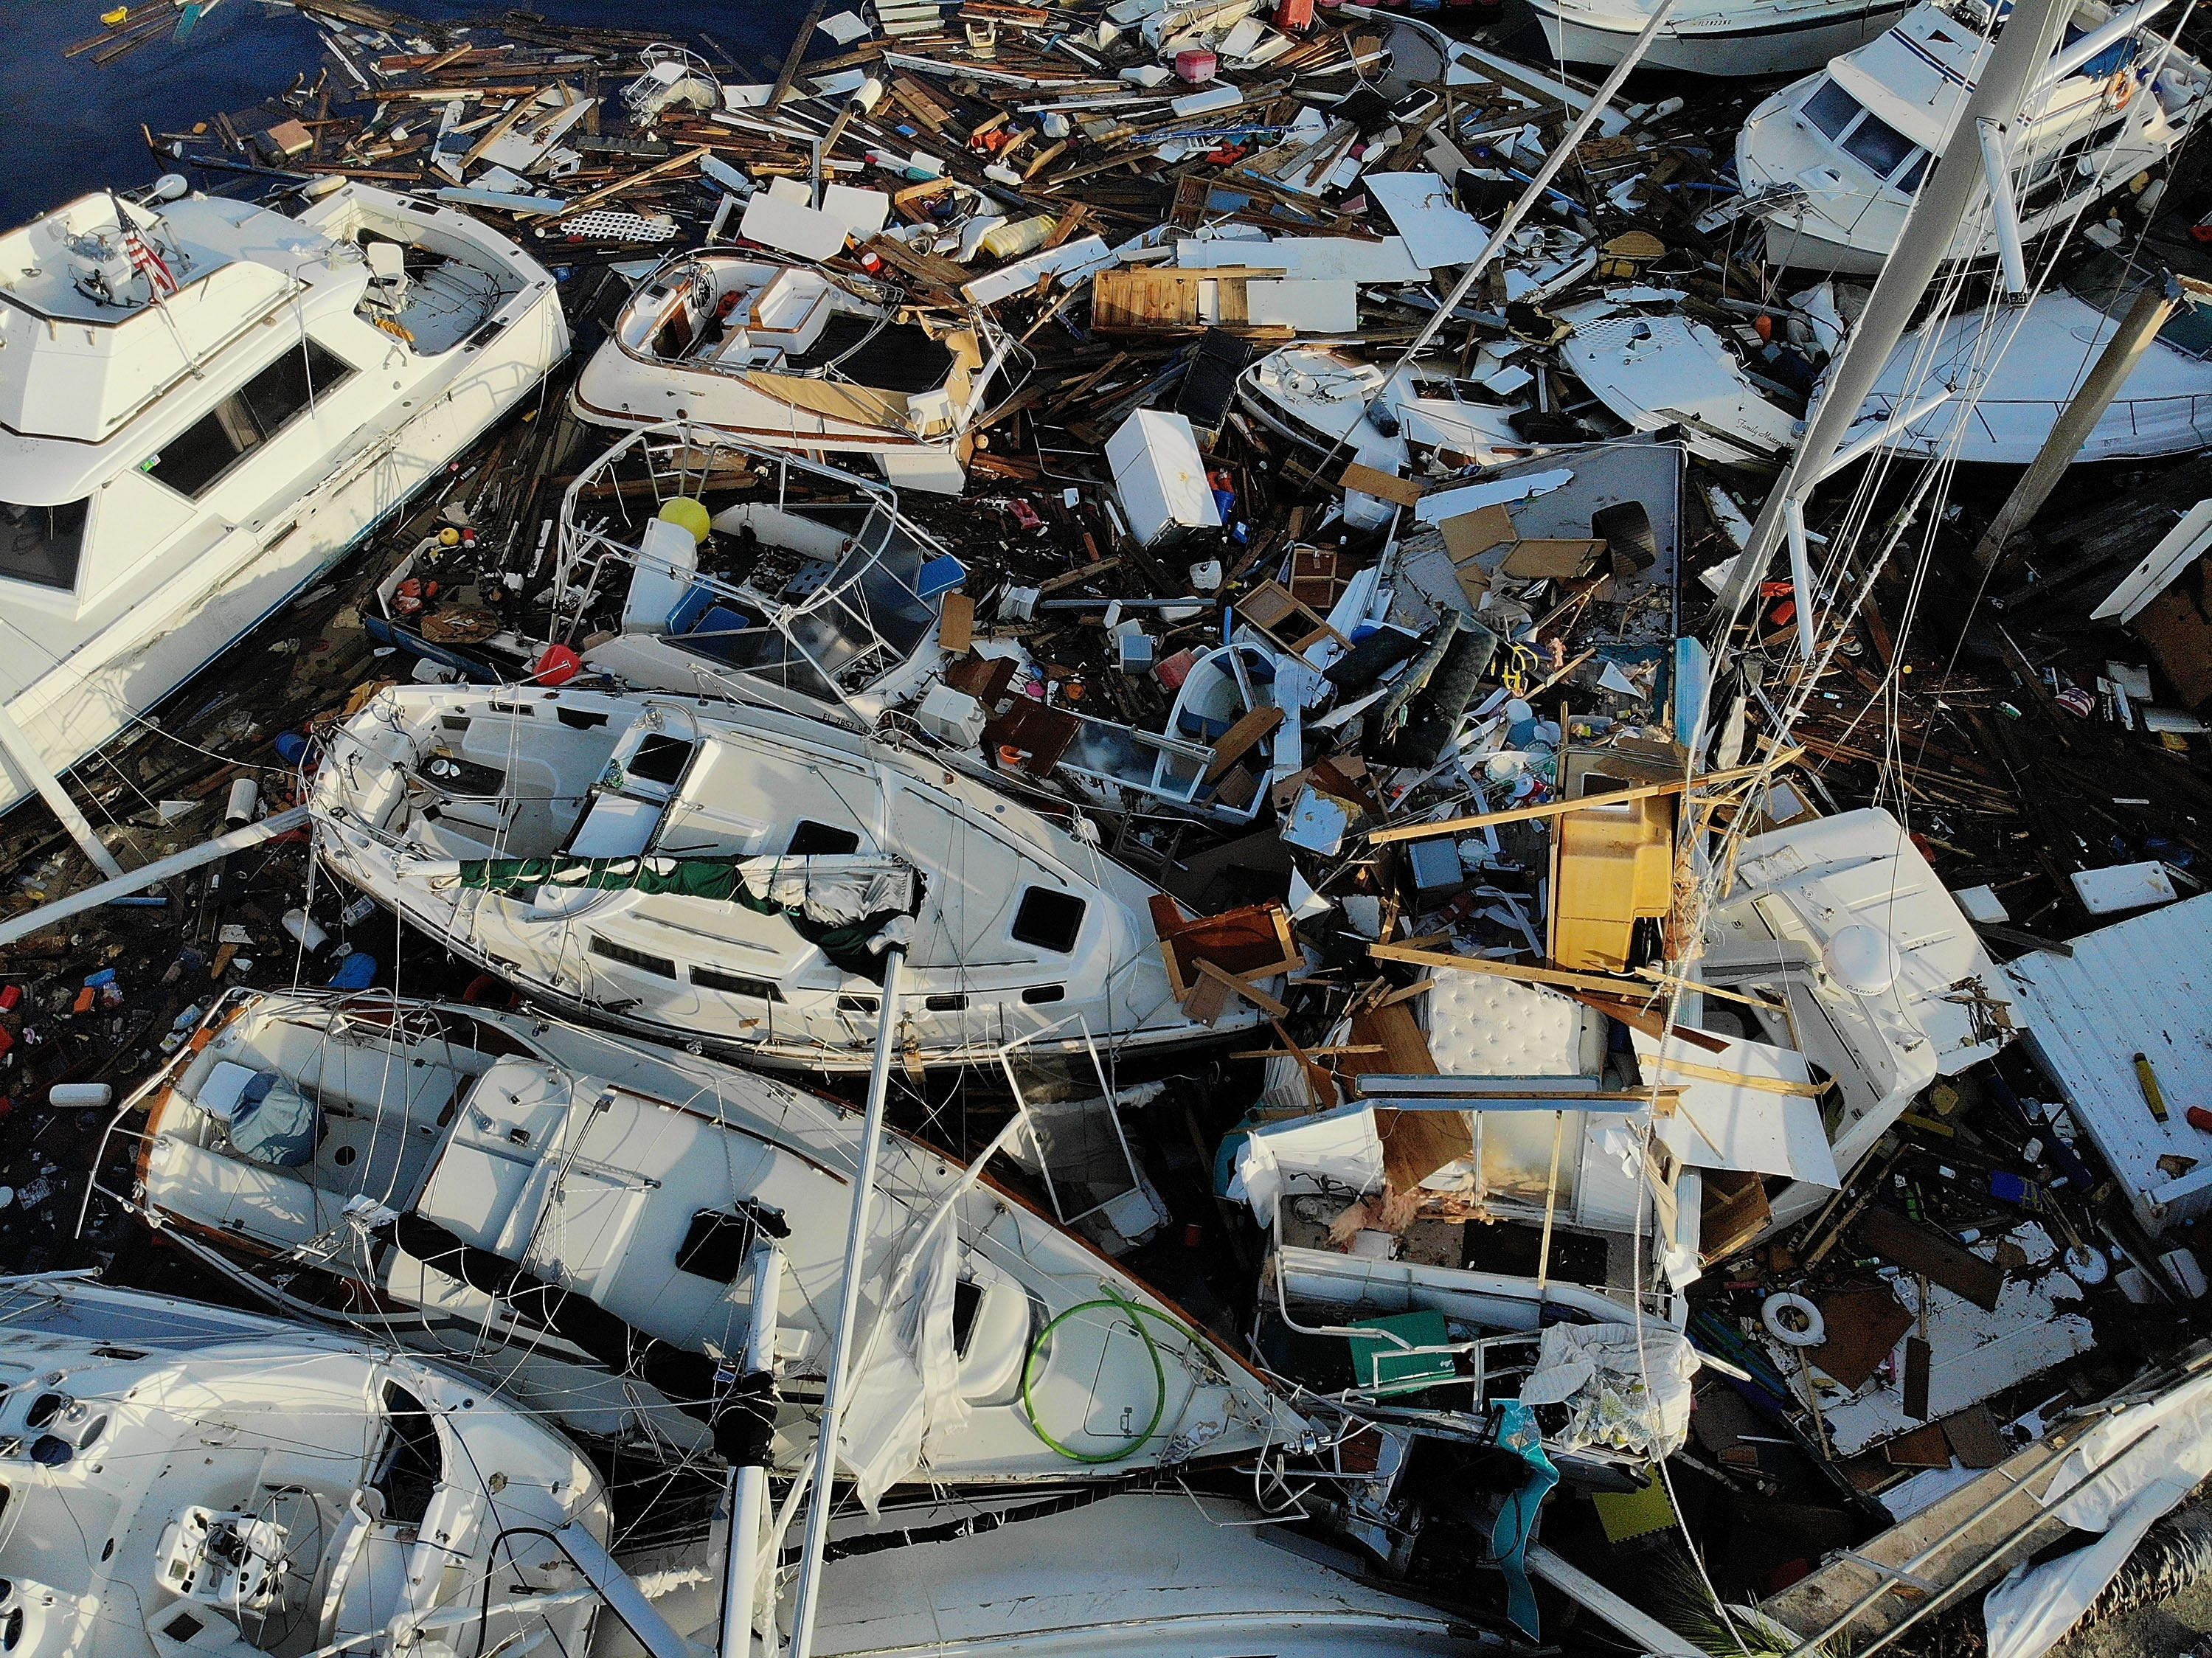 Boats sit in a tangled mess in the Panama City Marina after Hurricane Michael passed through the area on Oct. 16, 2018 in Panama City, Fla.